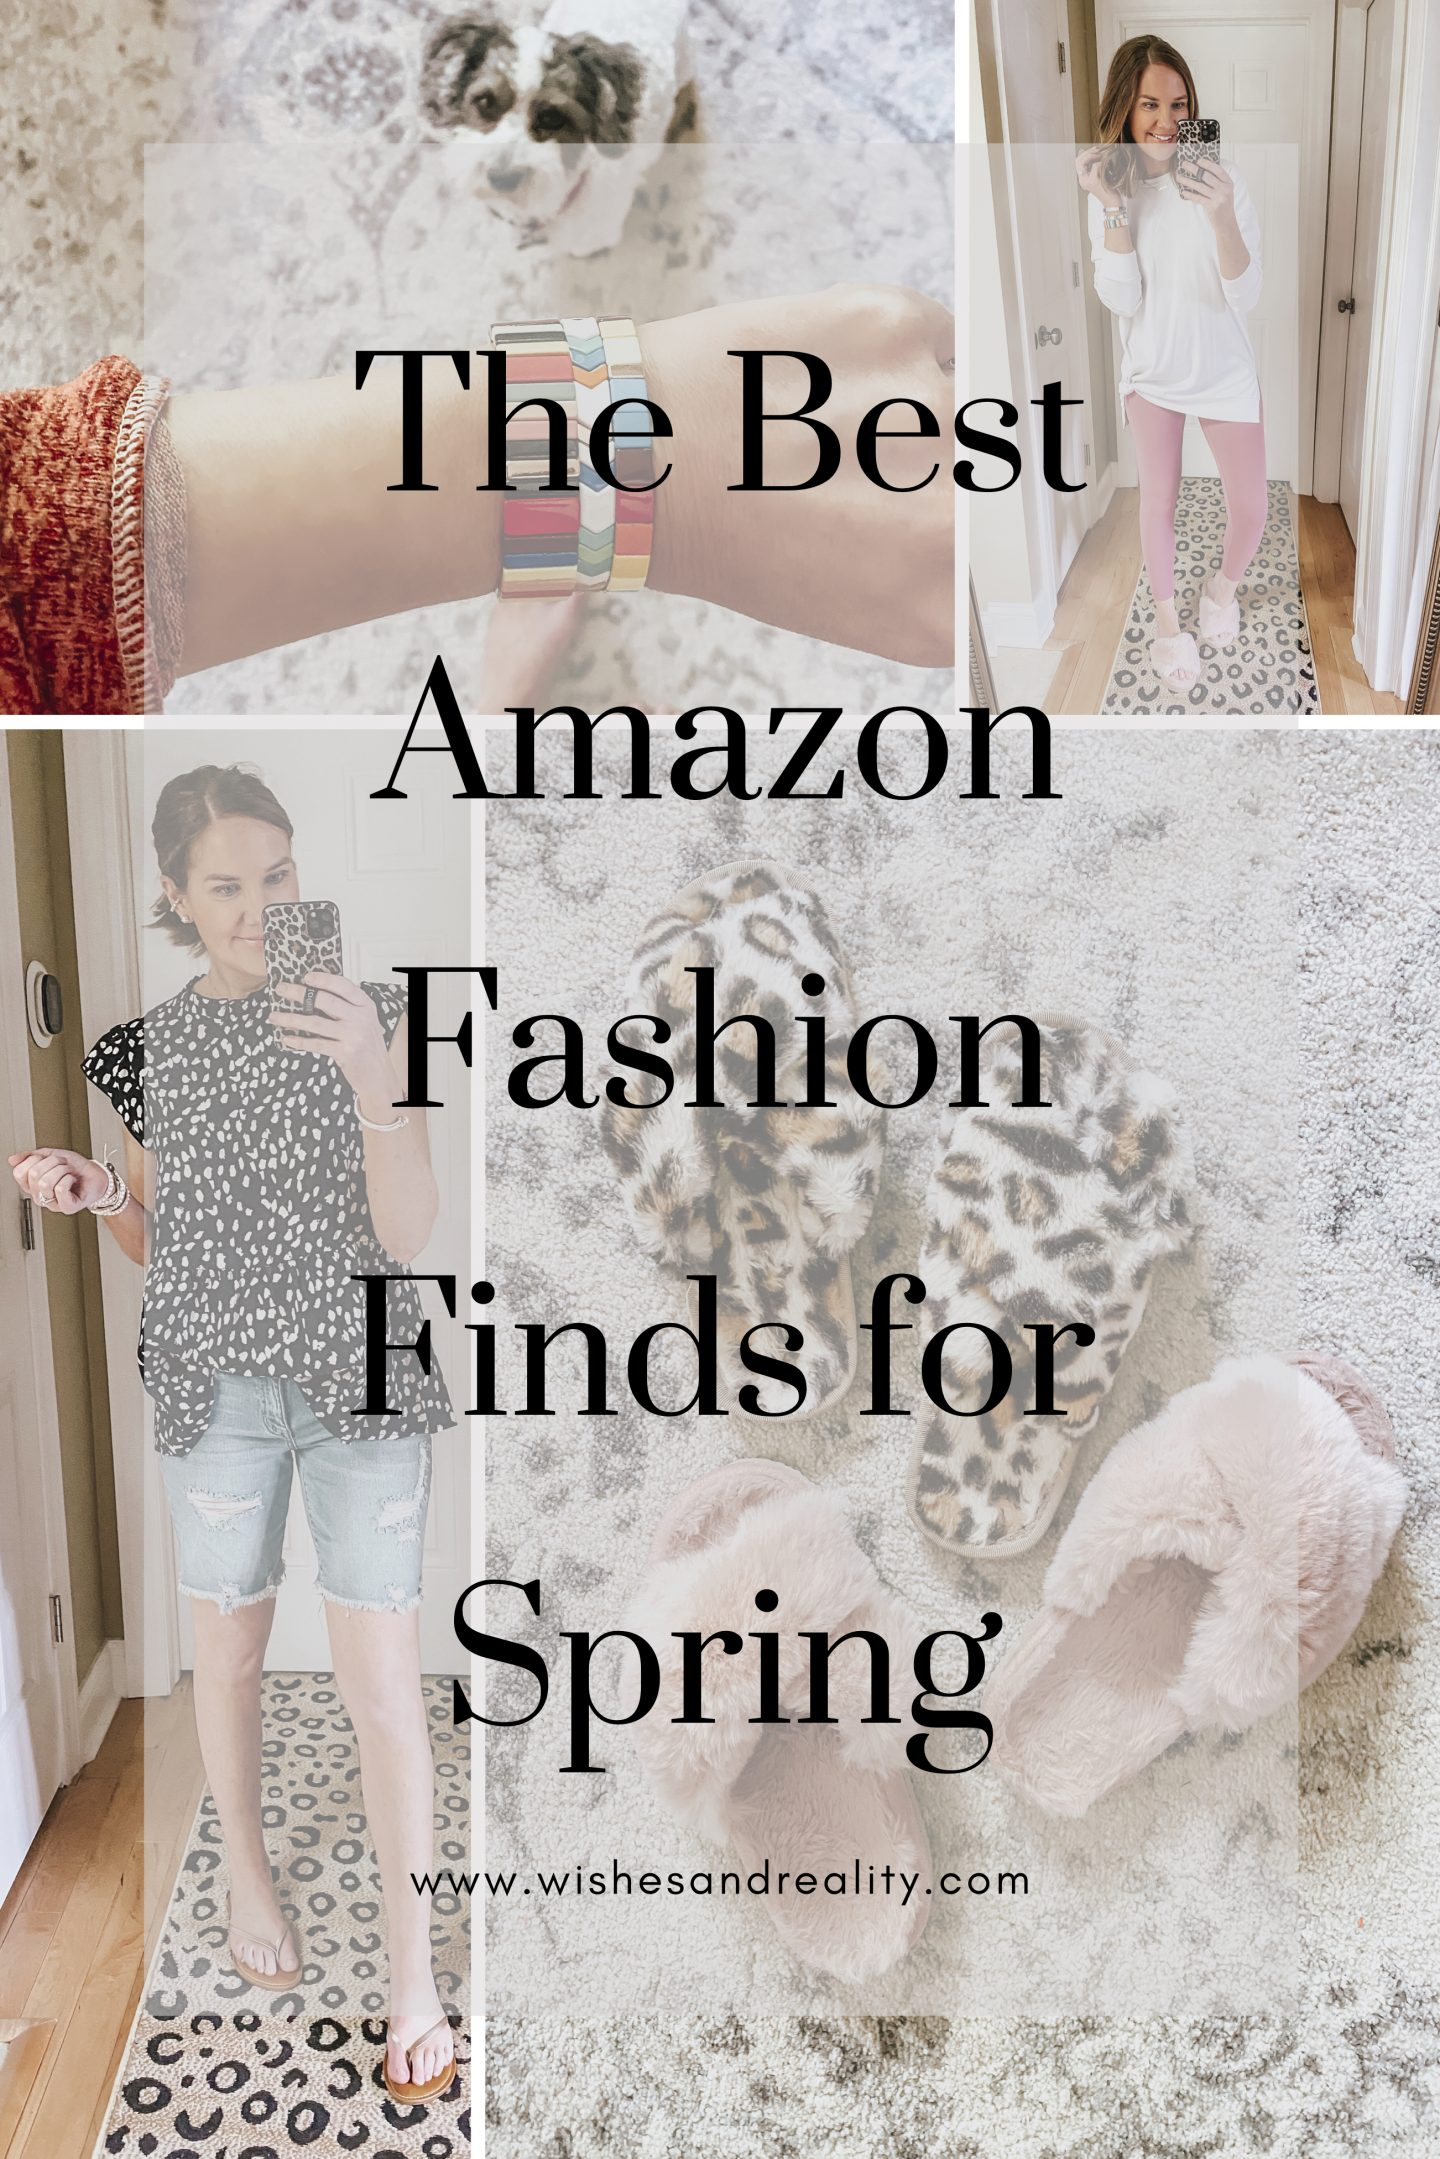 The Best Amazon Fashion Finds for Spring